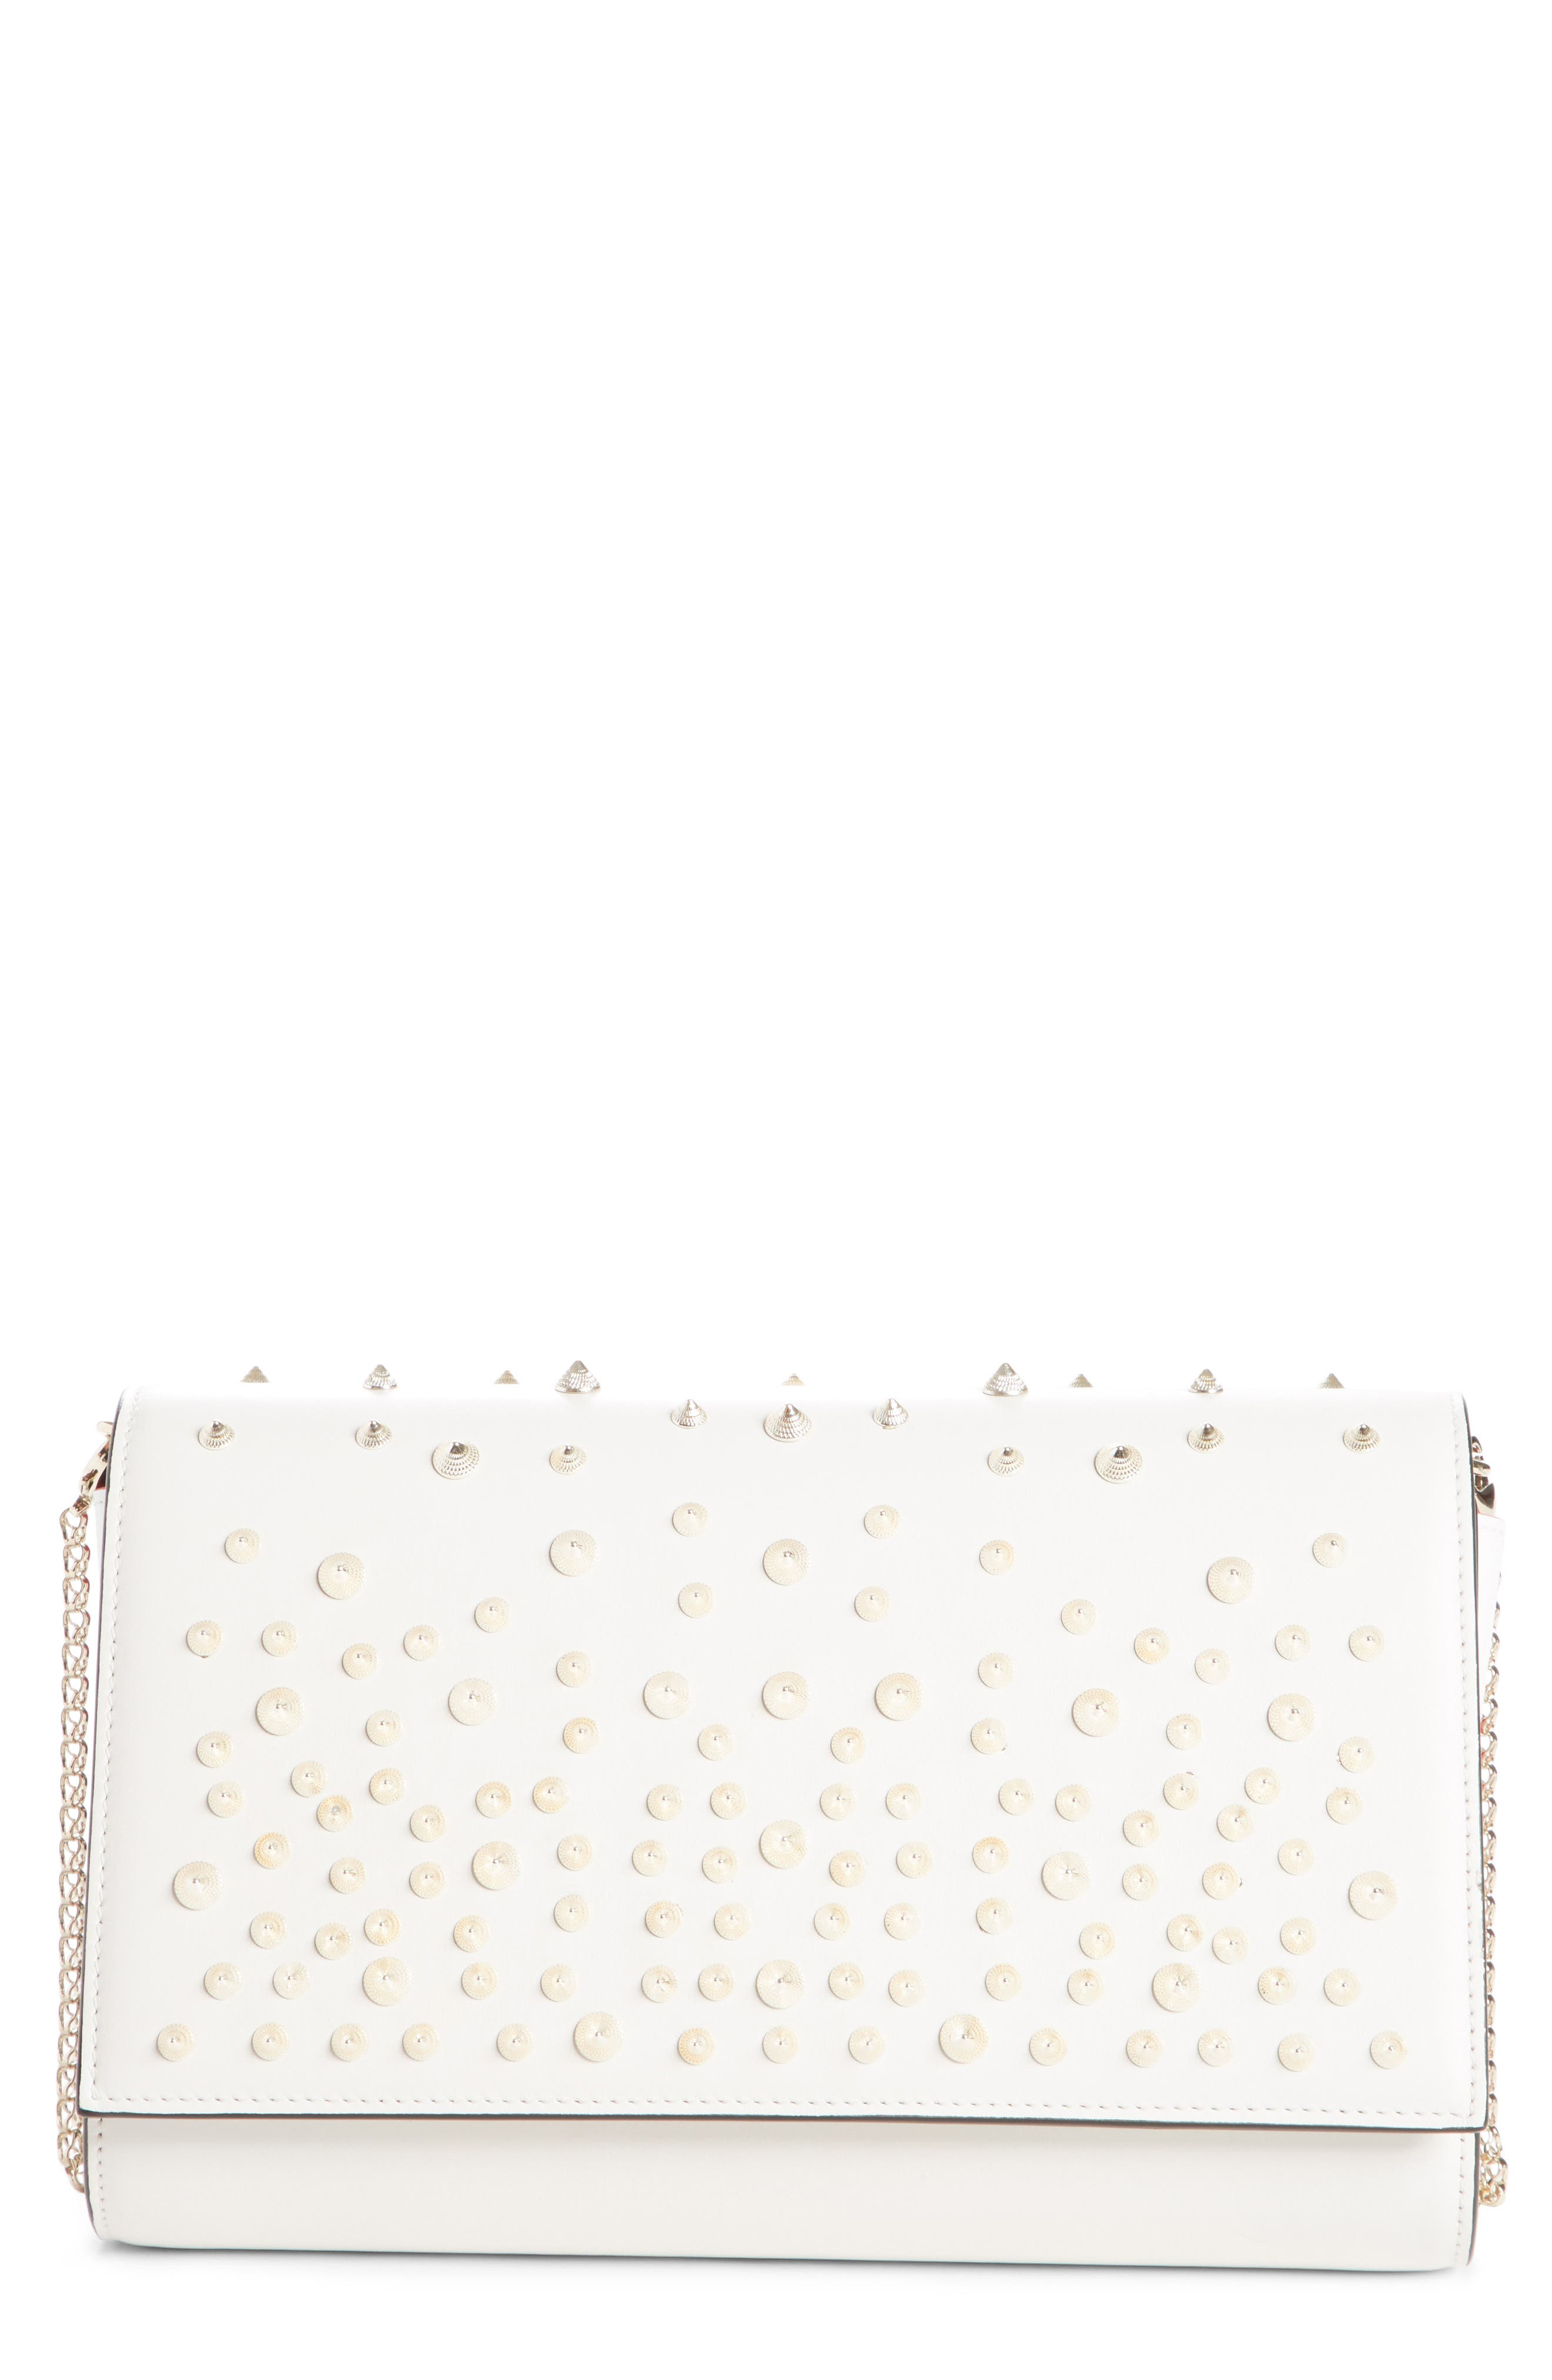 PALOMA SPIKED CALFSKIN CLUTCH - WHITE